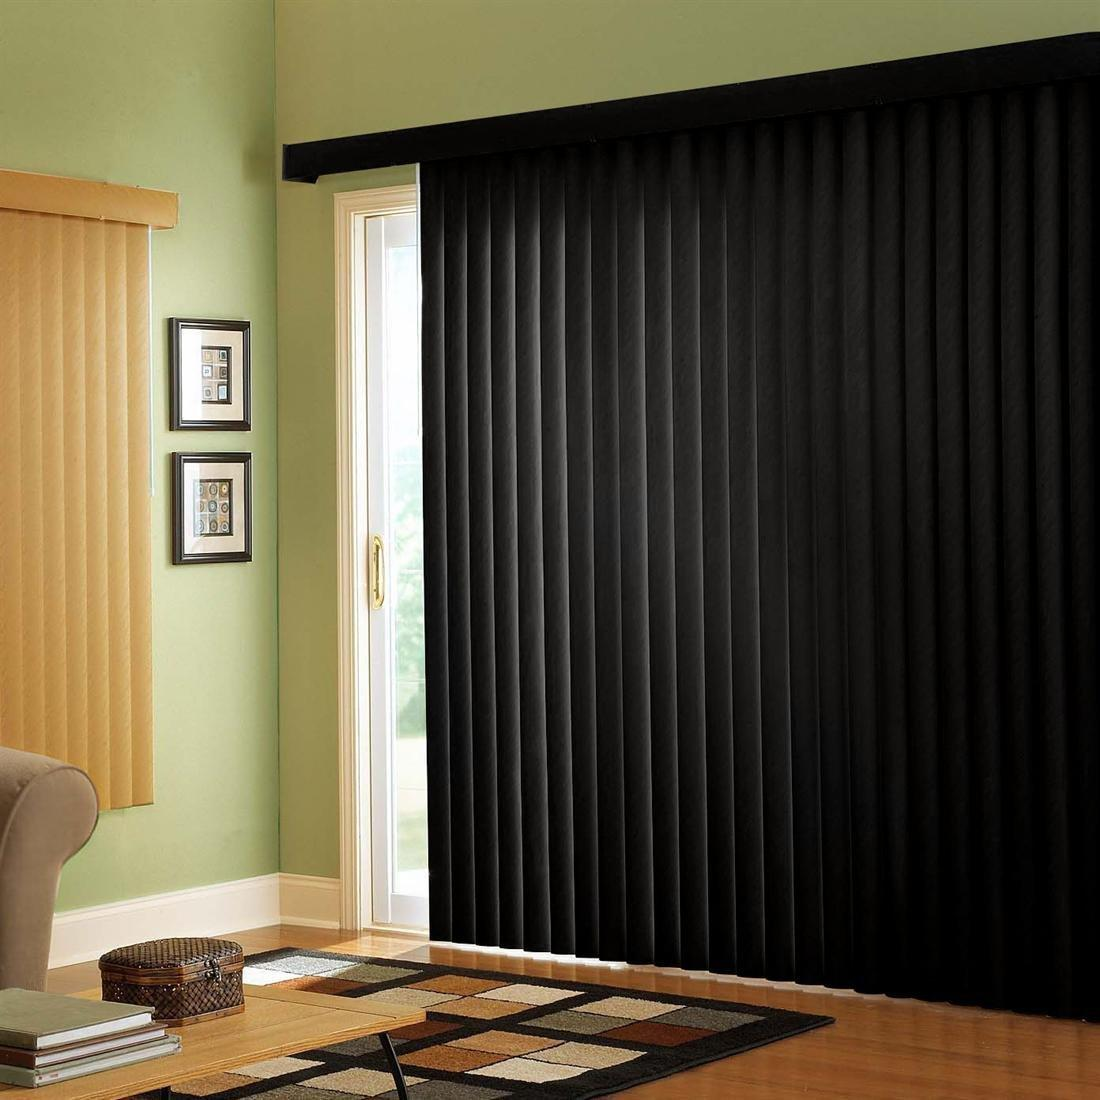 Vertical blind c92cae95e3